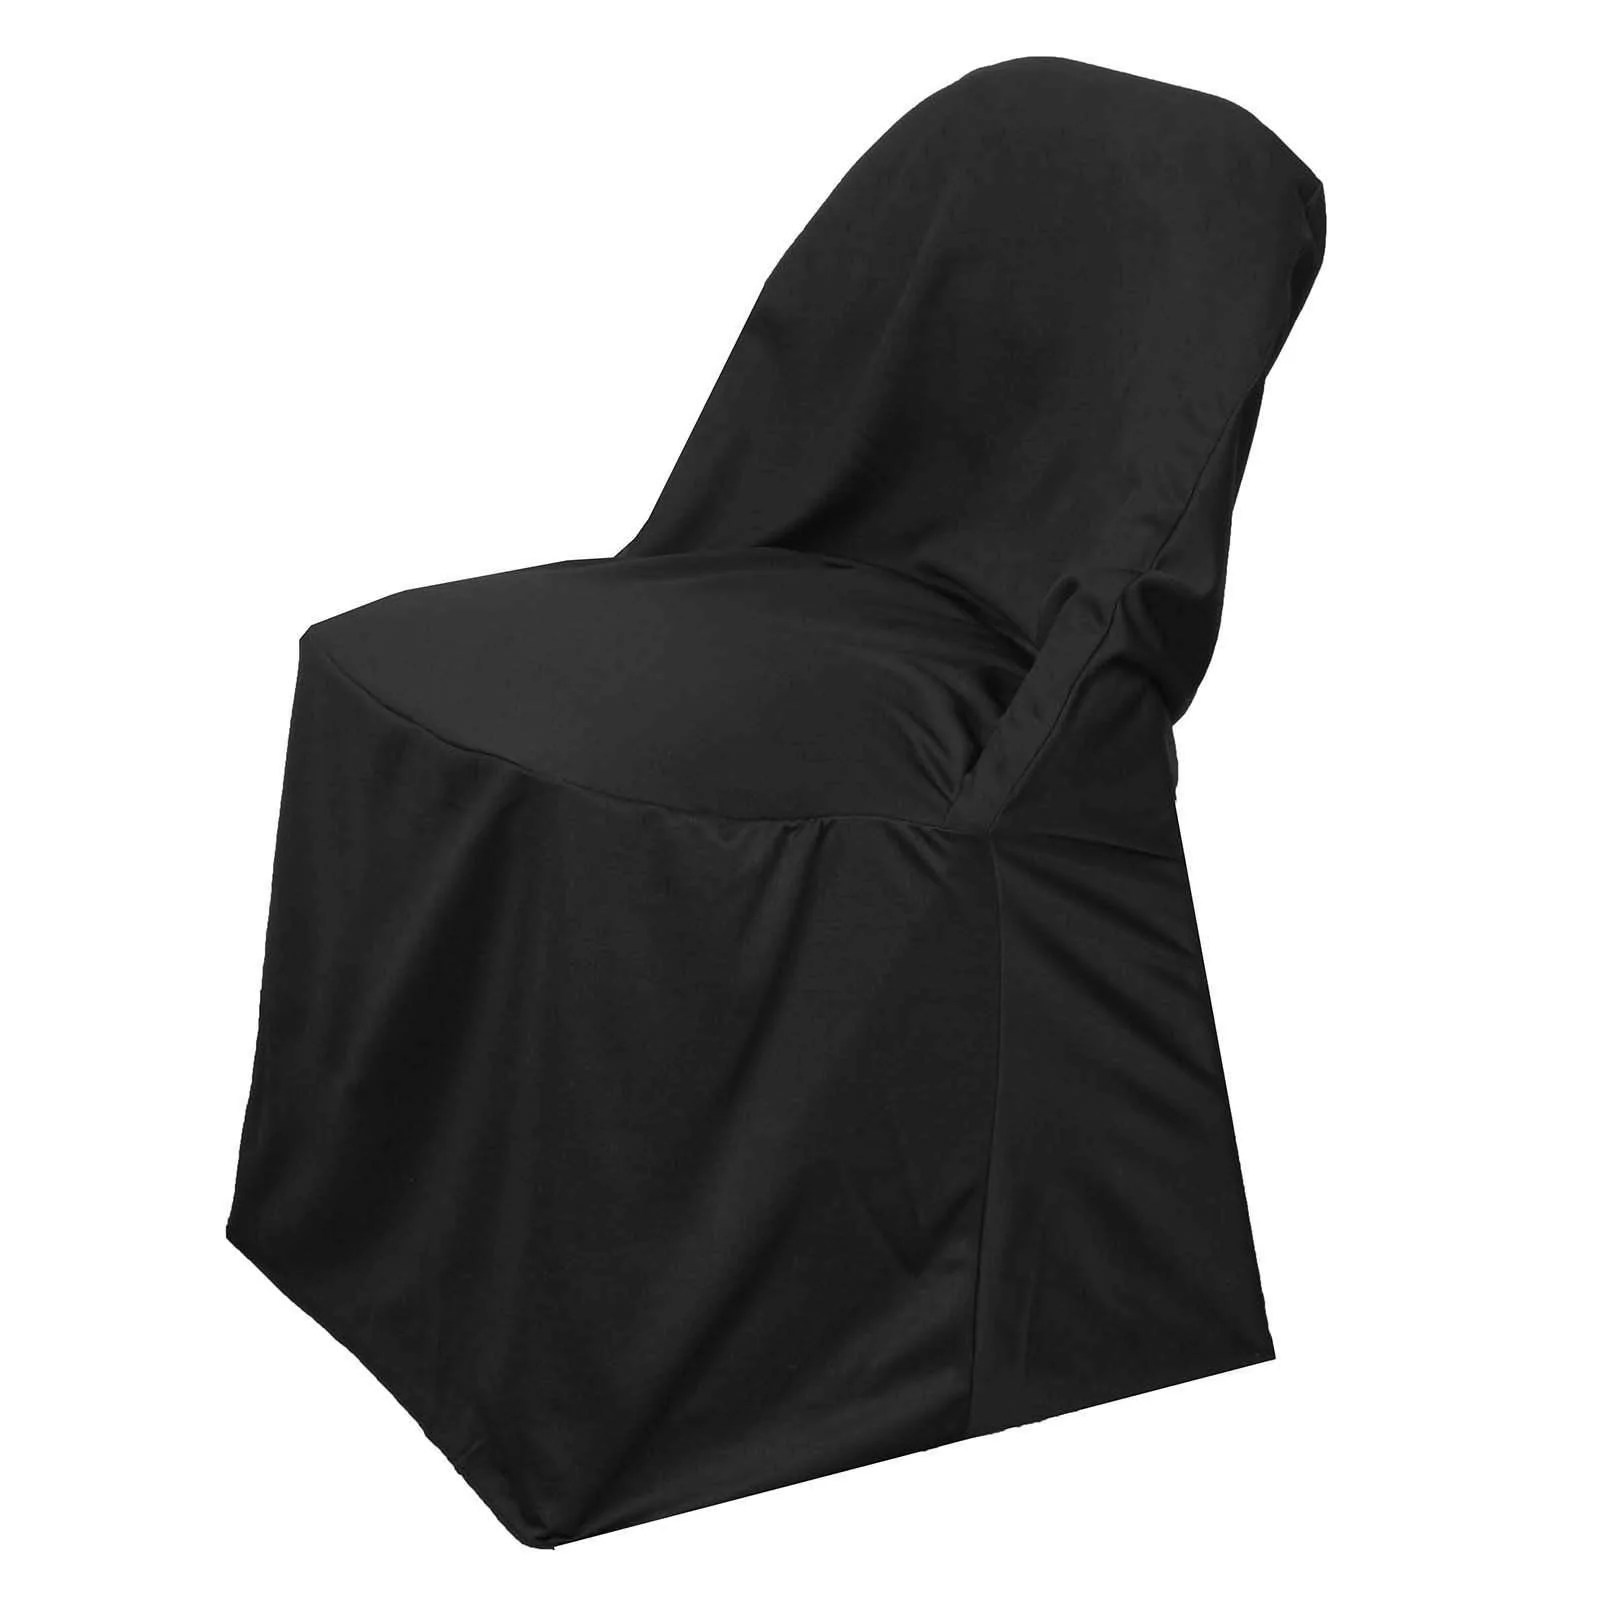 will folding chair covers fit banquet chairs childrens desk premium black spandex scuba party wedding event stretch